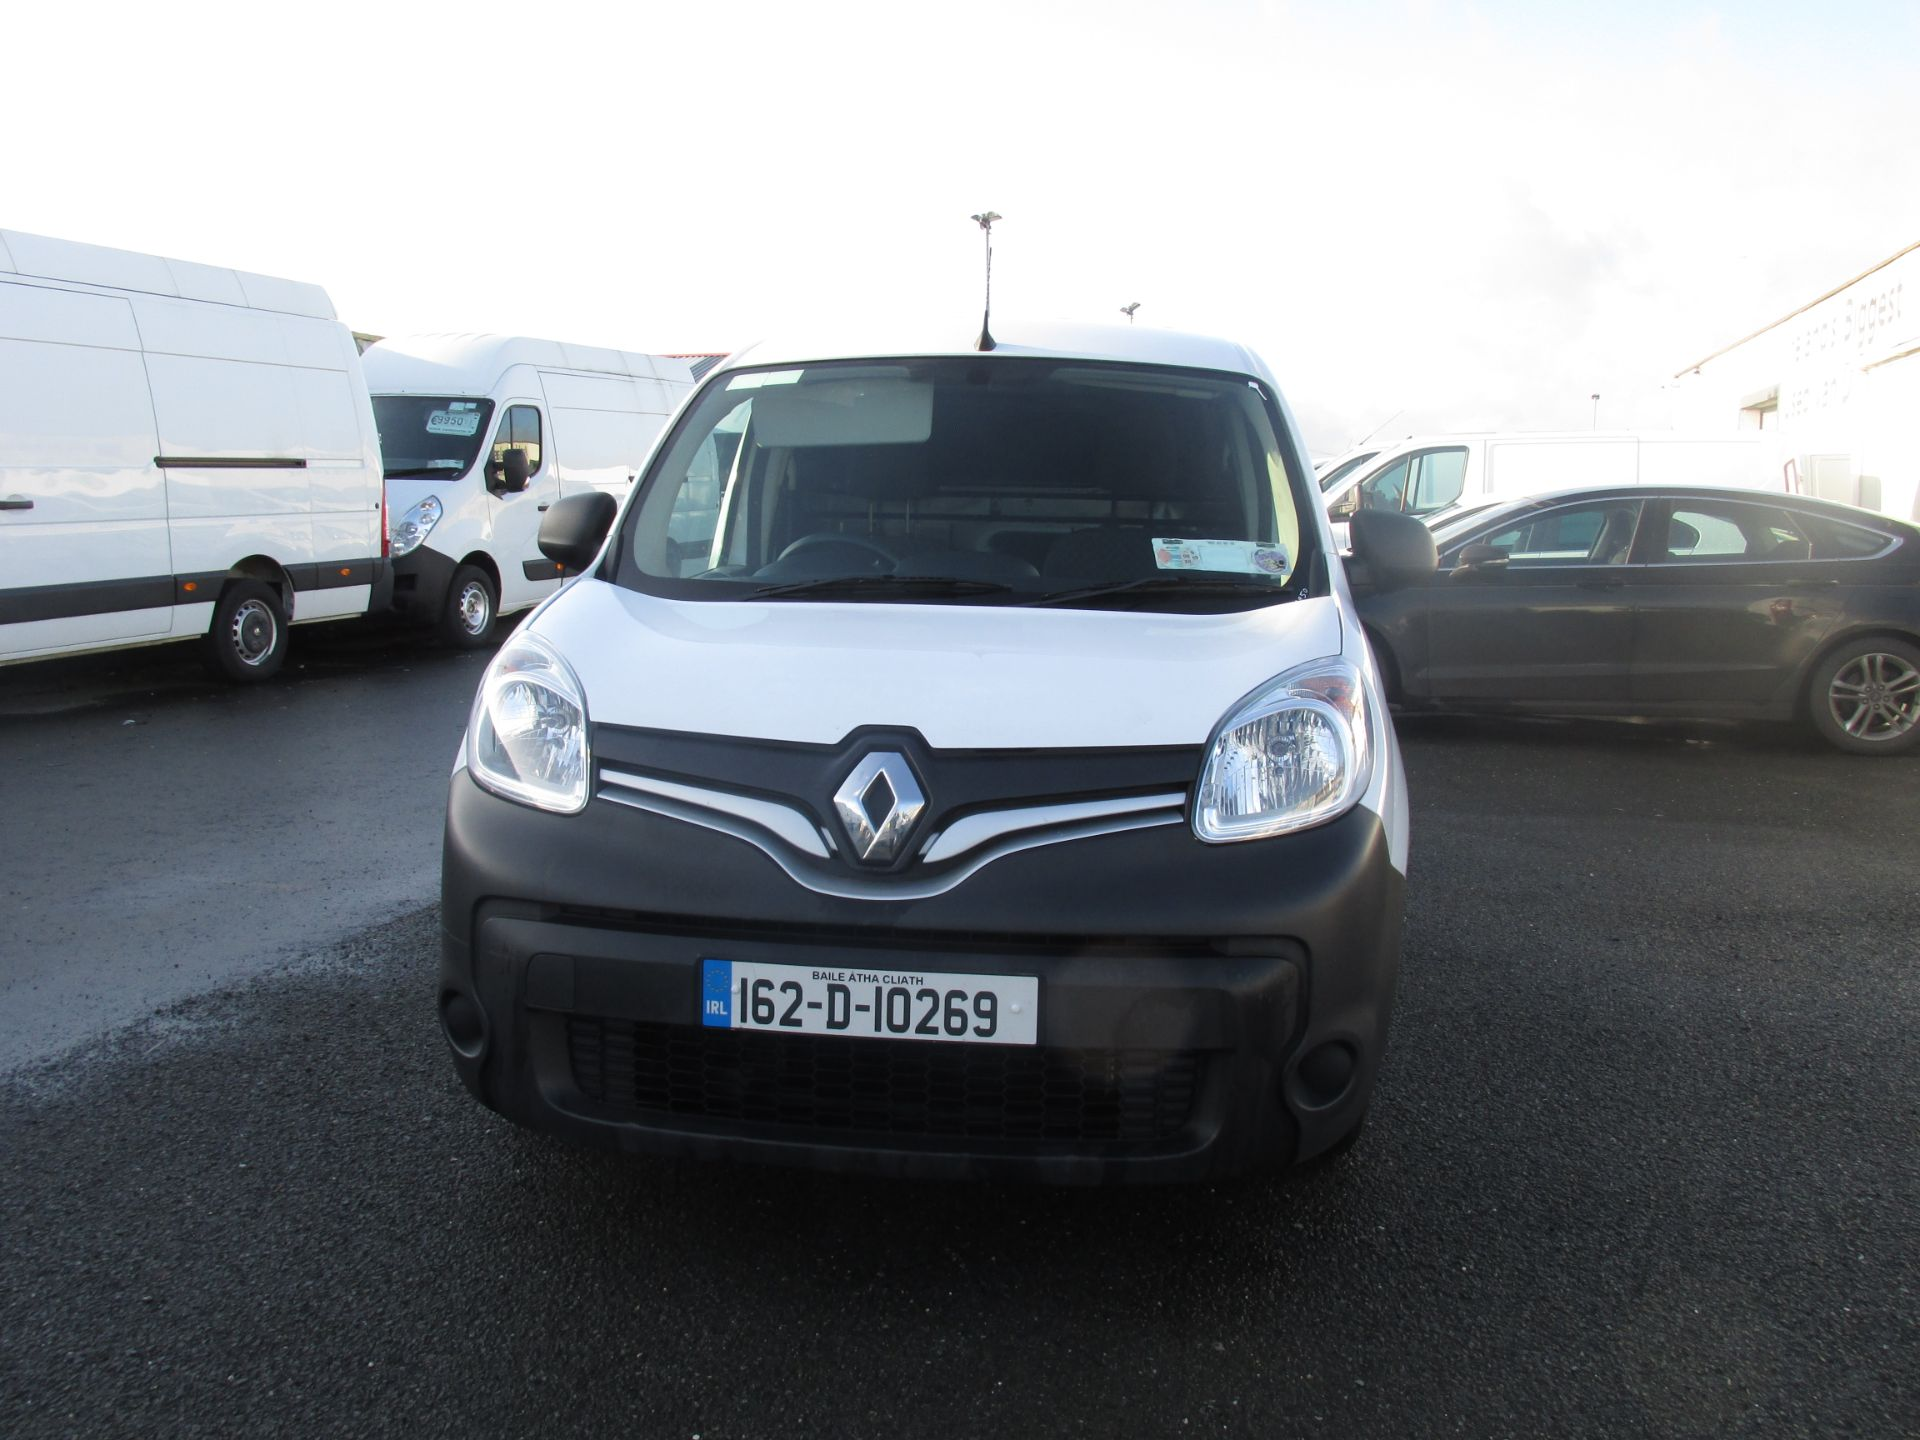 2016 Renault Kangoo 1.5 DCI 75 Business 2DR  - LOW MILES - ONE OWNER -  FSH - (162D10269) Image 8